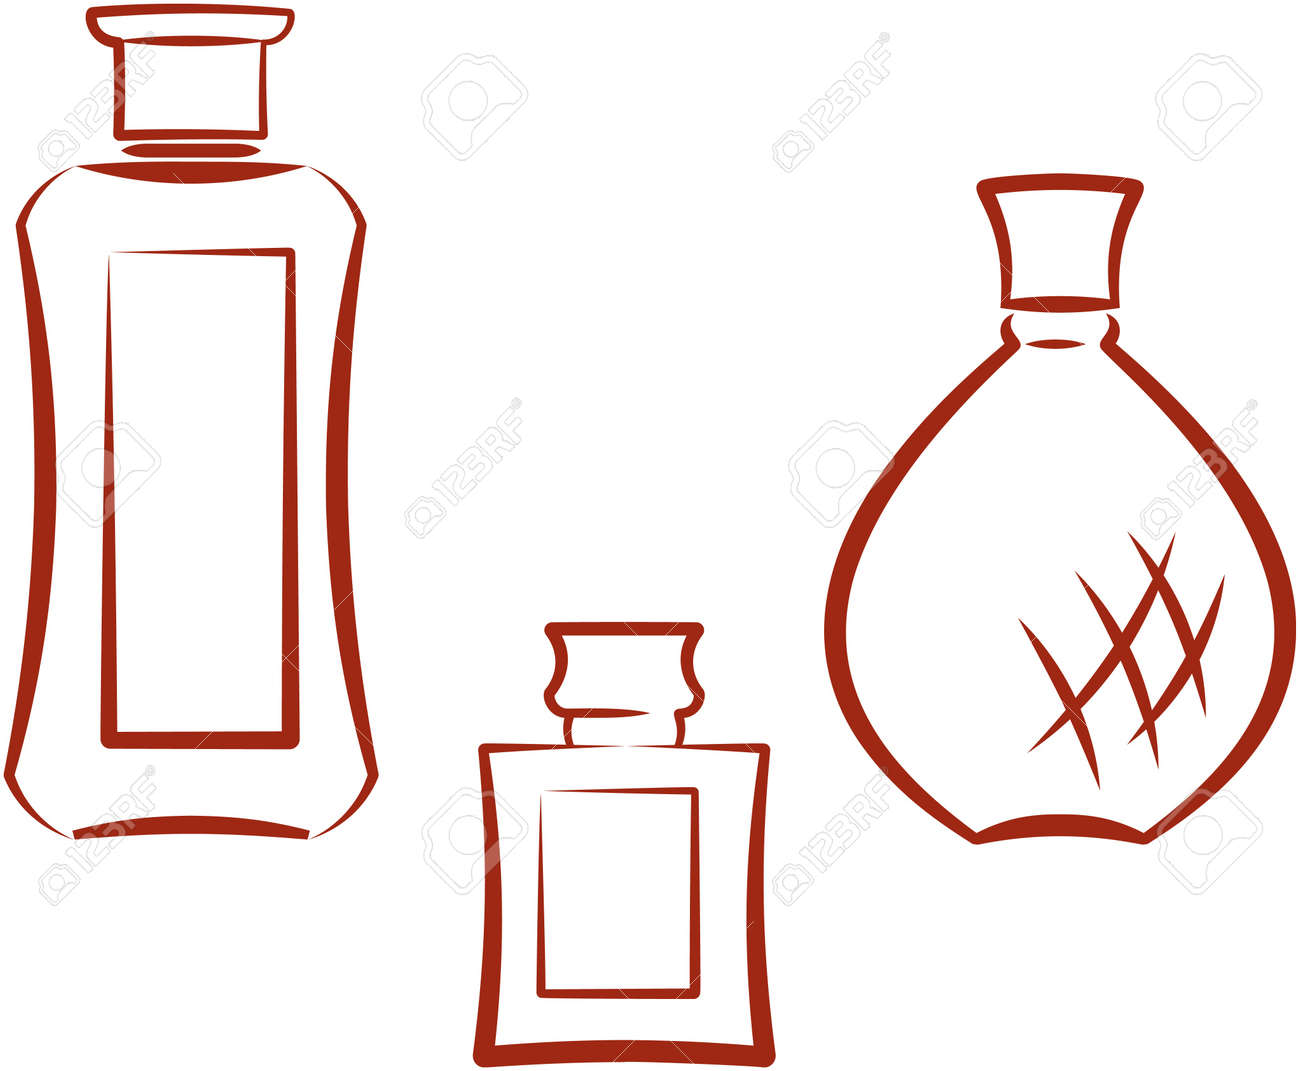 Perfume bottles. Vector illustration Stock Vector - 9667567